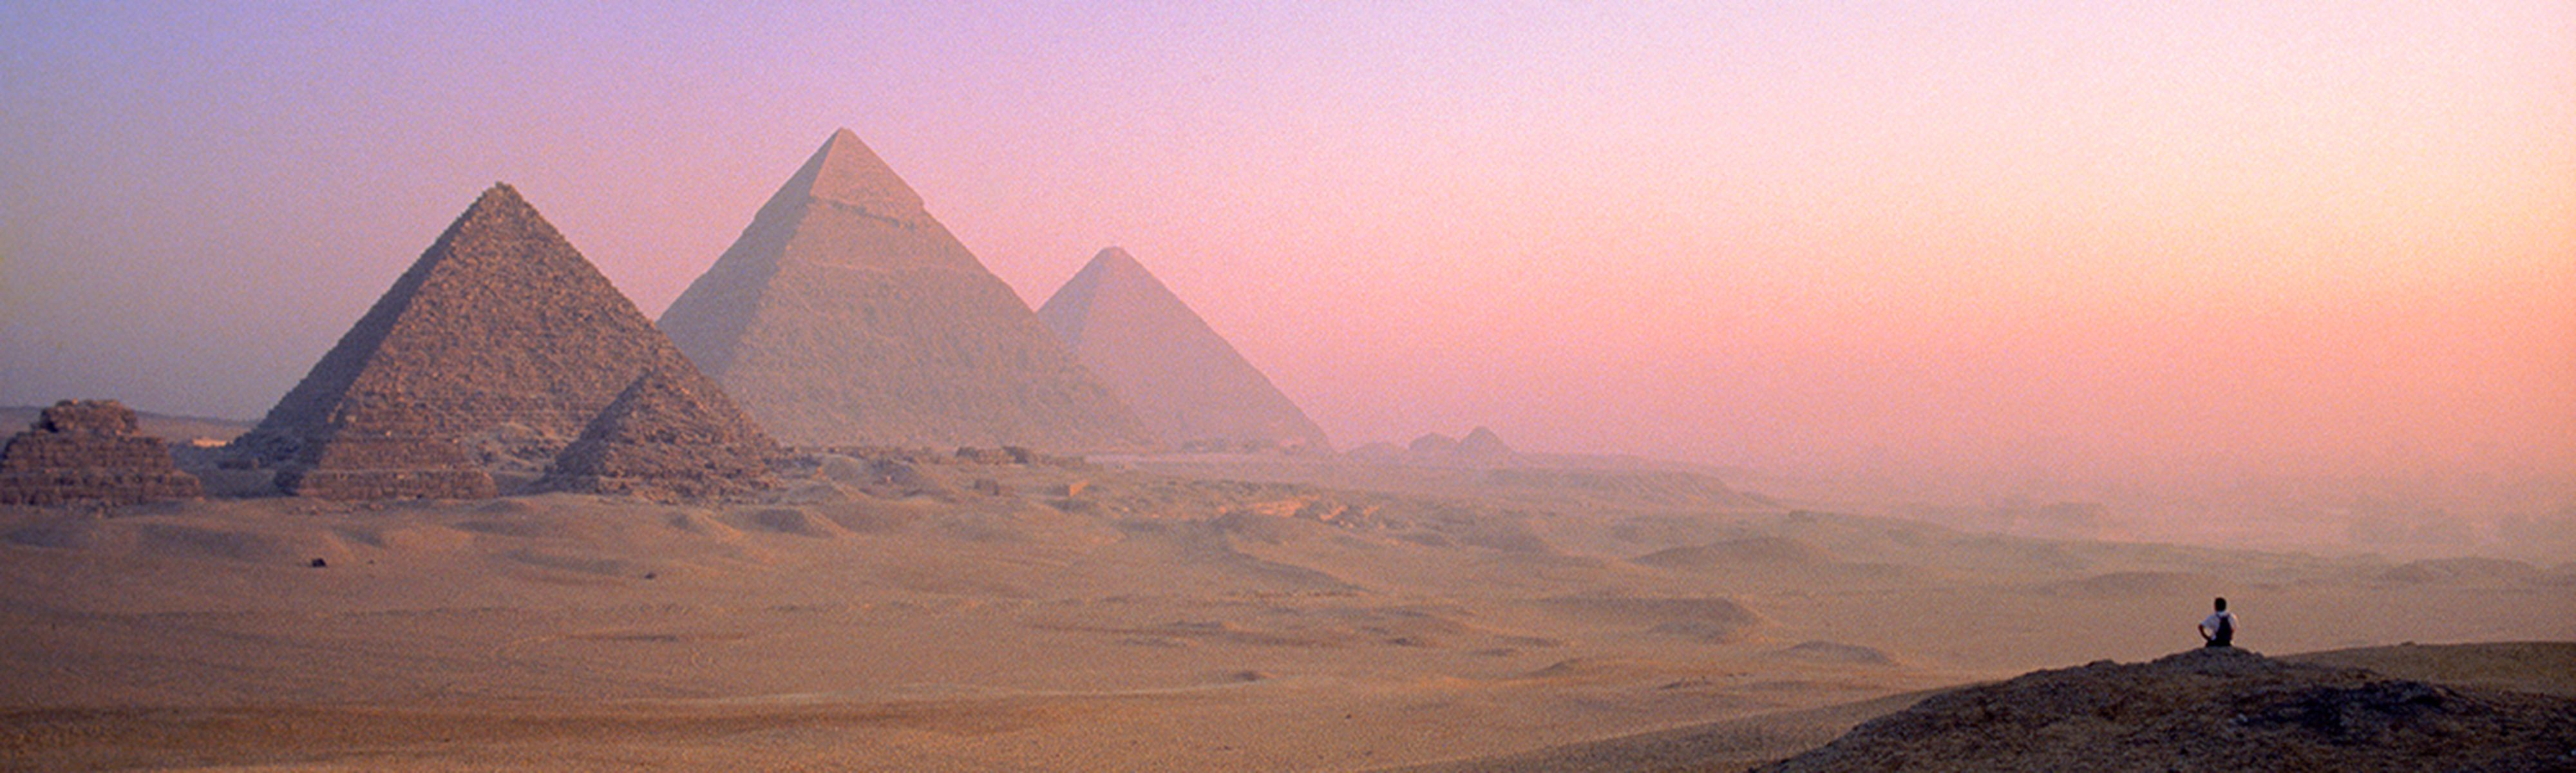 Man sitting on hill looking at Great Pyramids of Giza at sunset